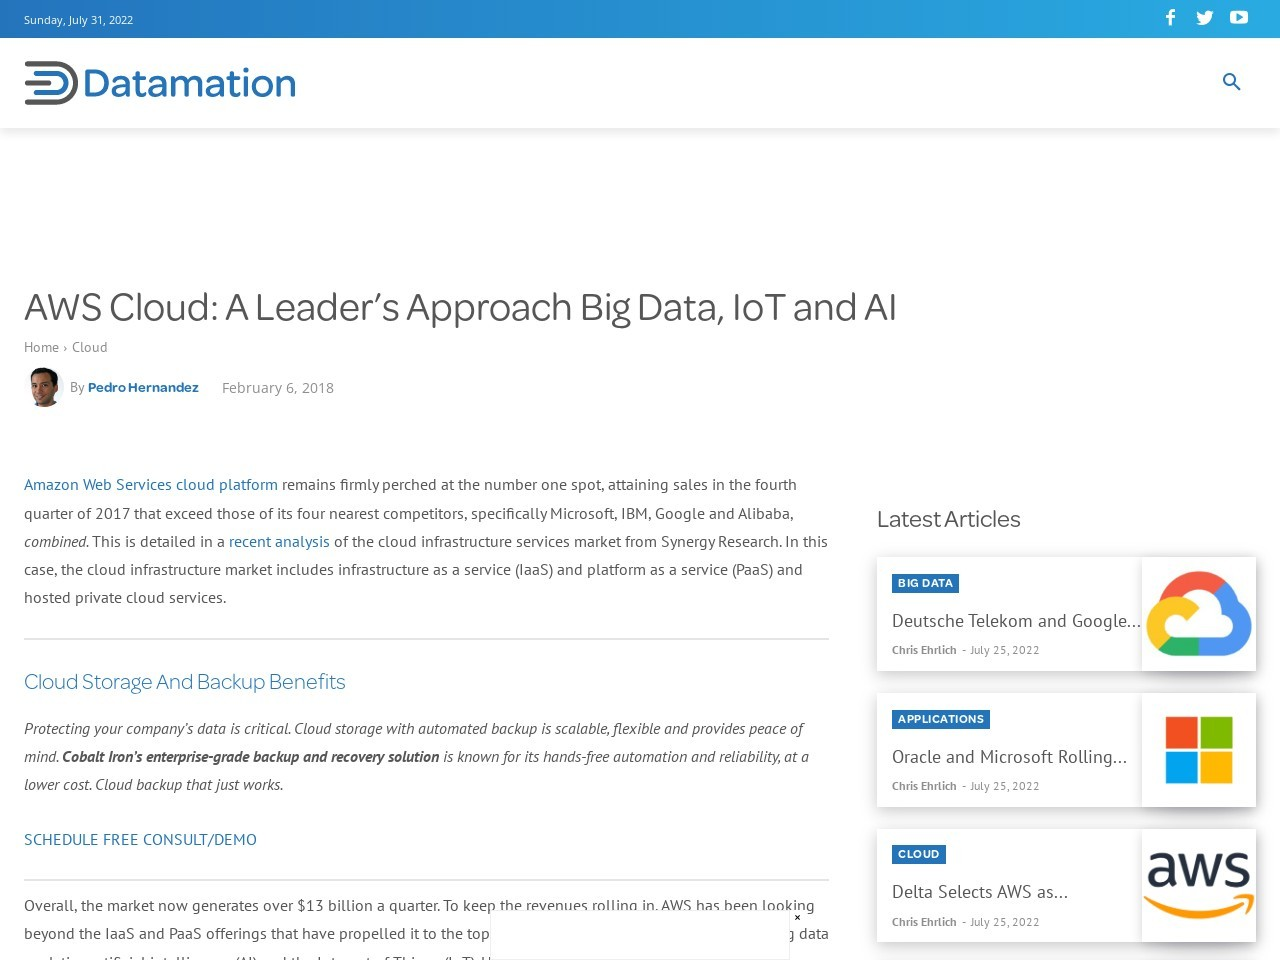 AWS Cloud: A Leader's Approach Big Data, IoT and AI